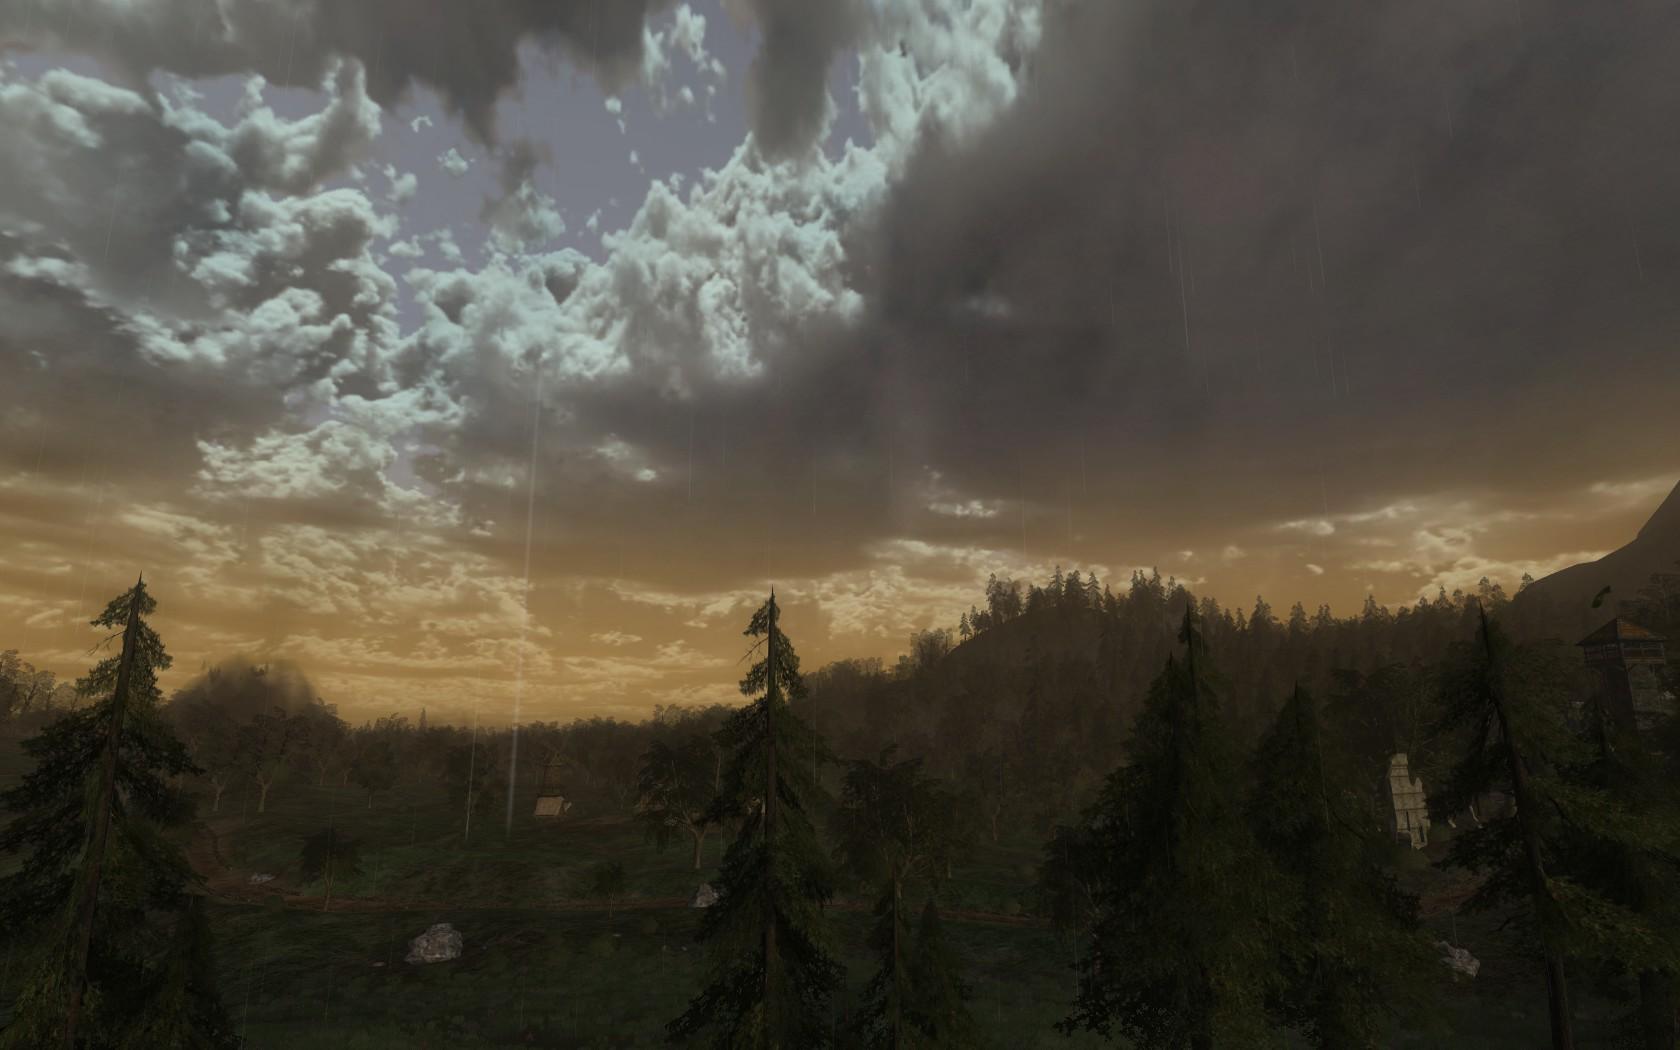 Lord of the Rings Online - Rain clouds over Rohan